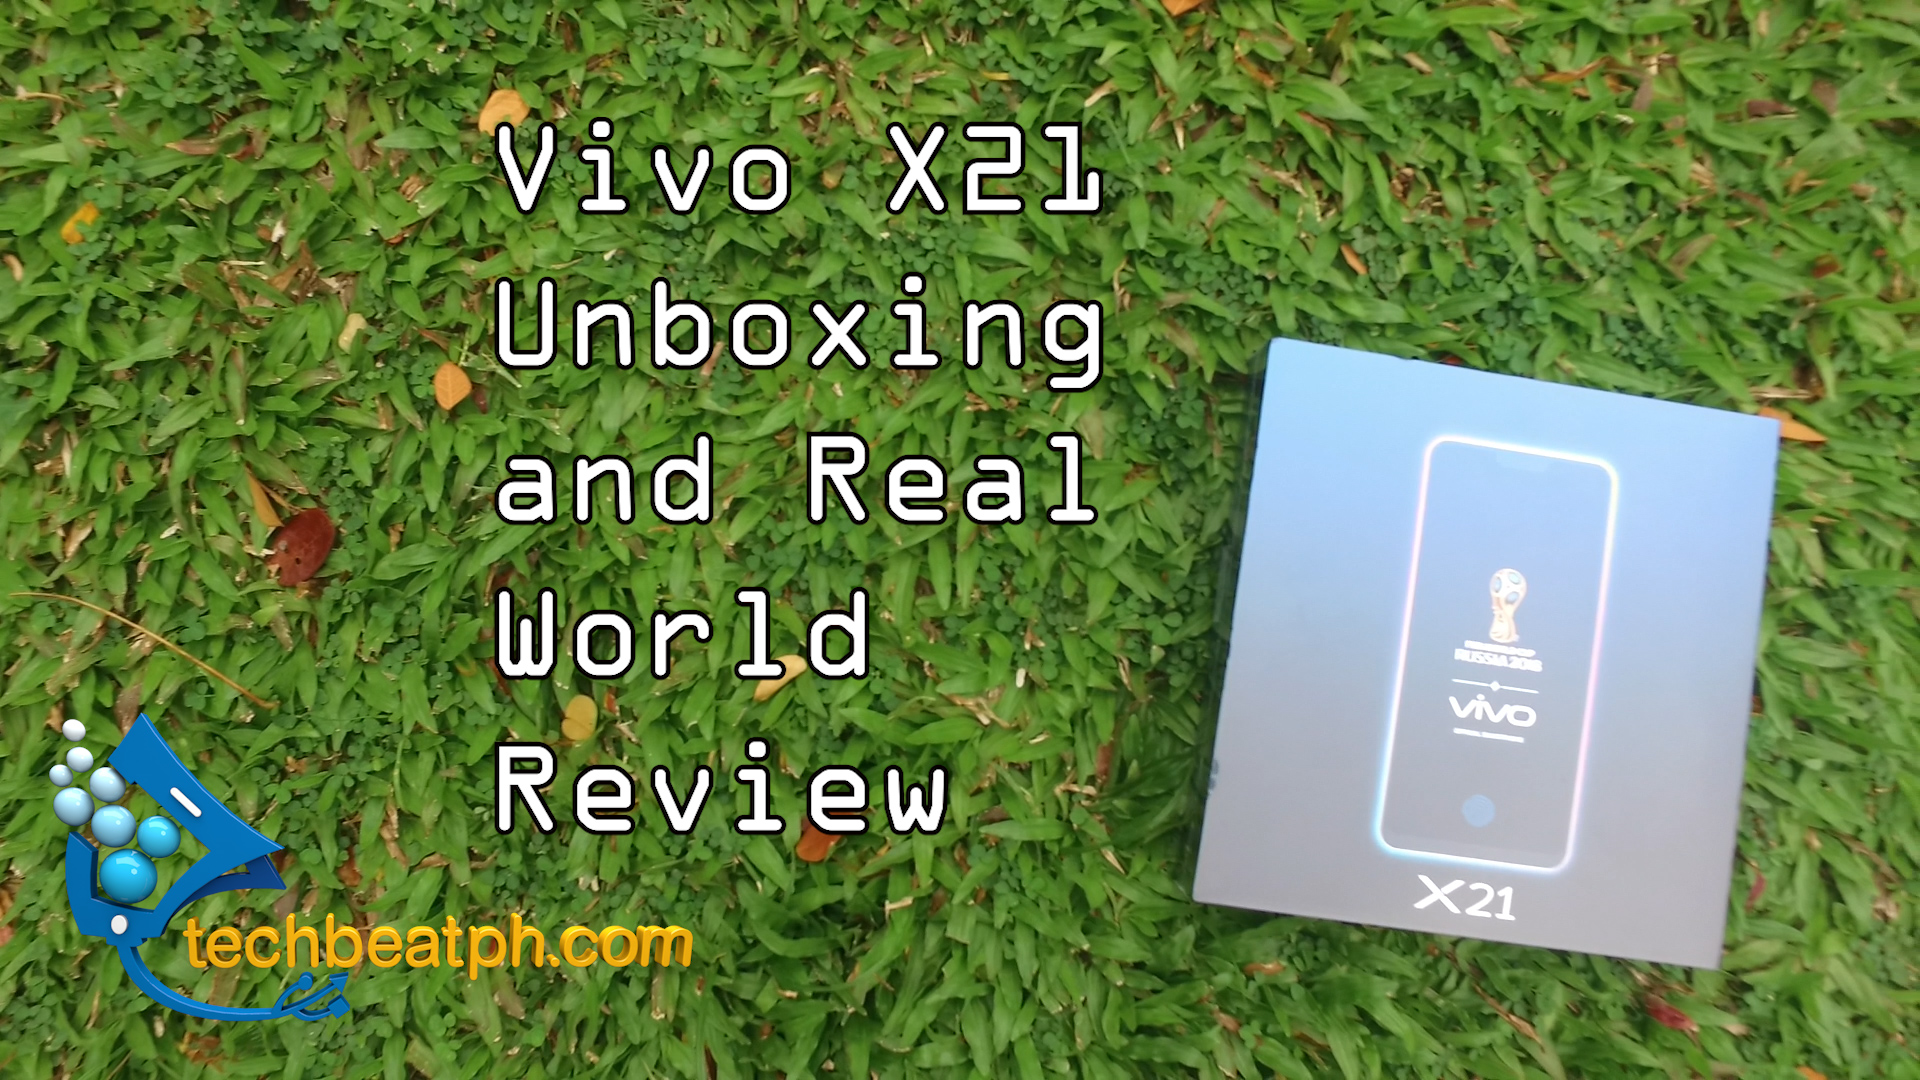 Vivo X21 Unboxing and Real World Review